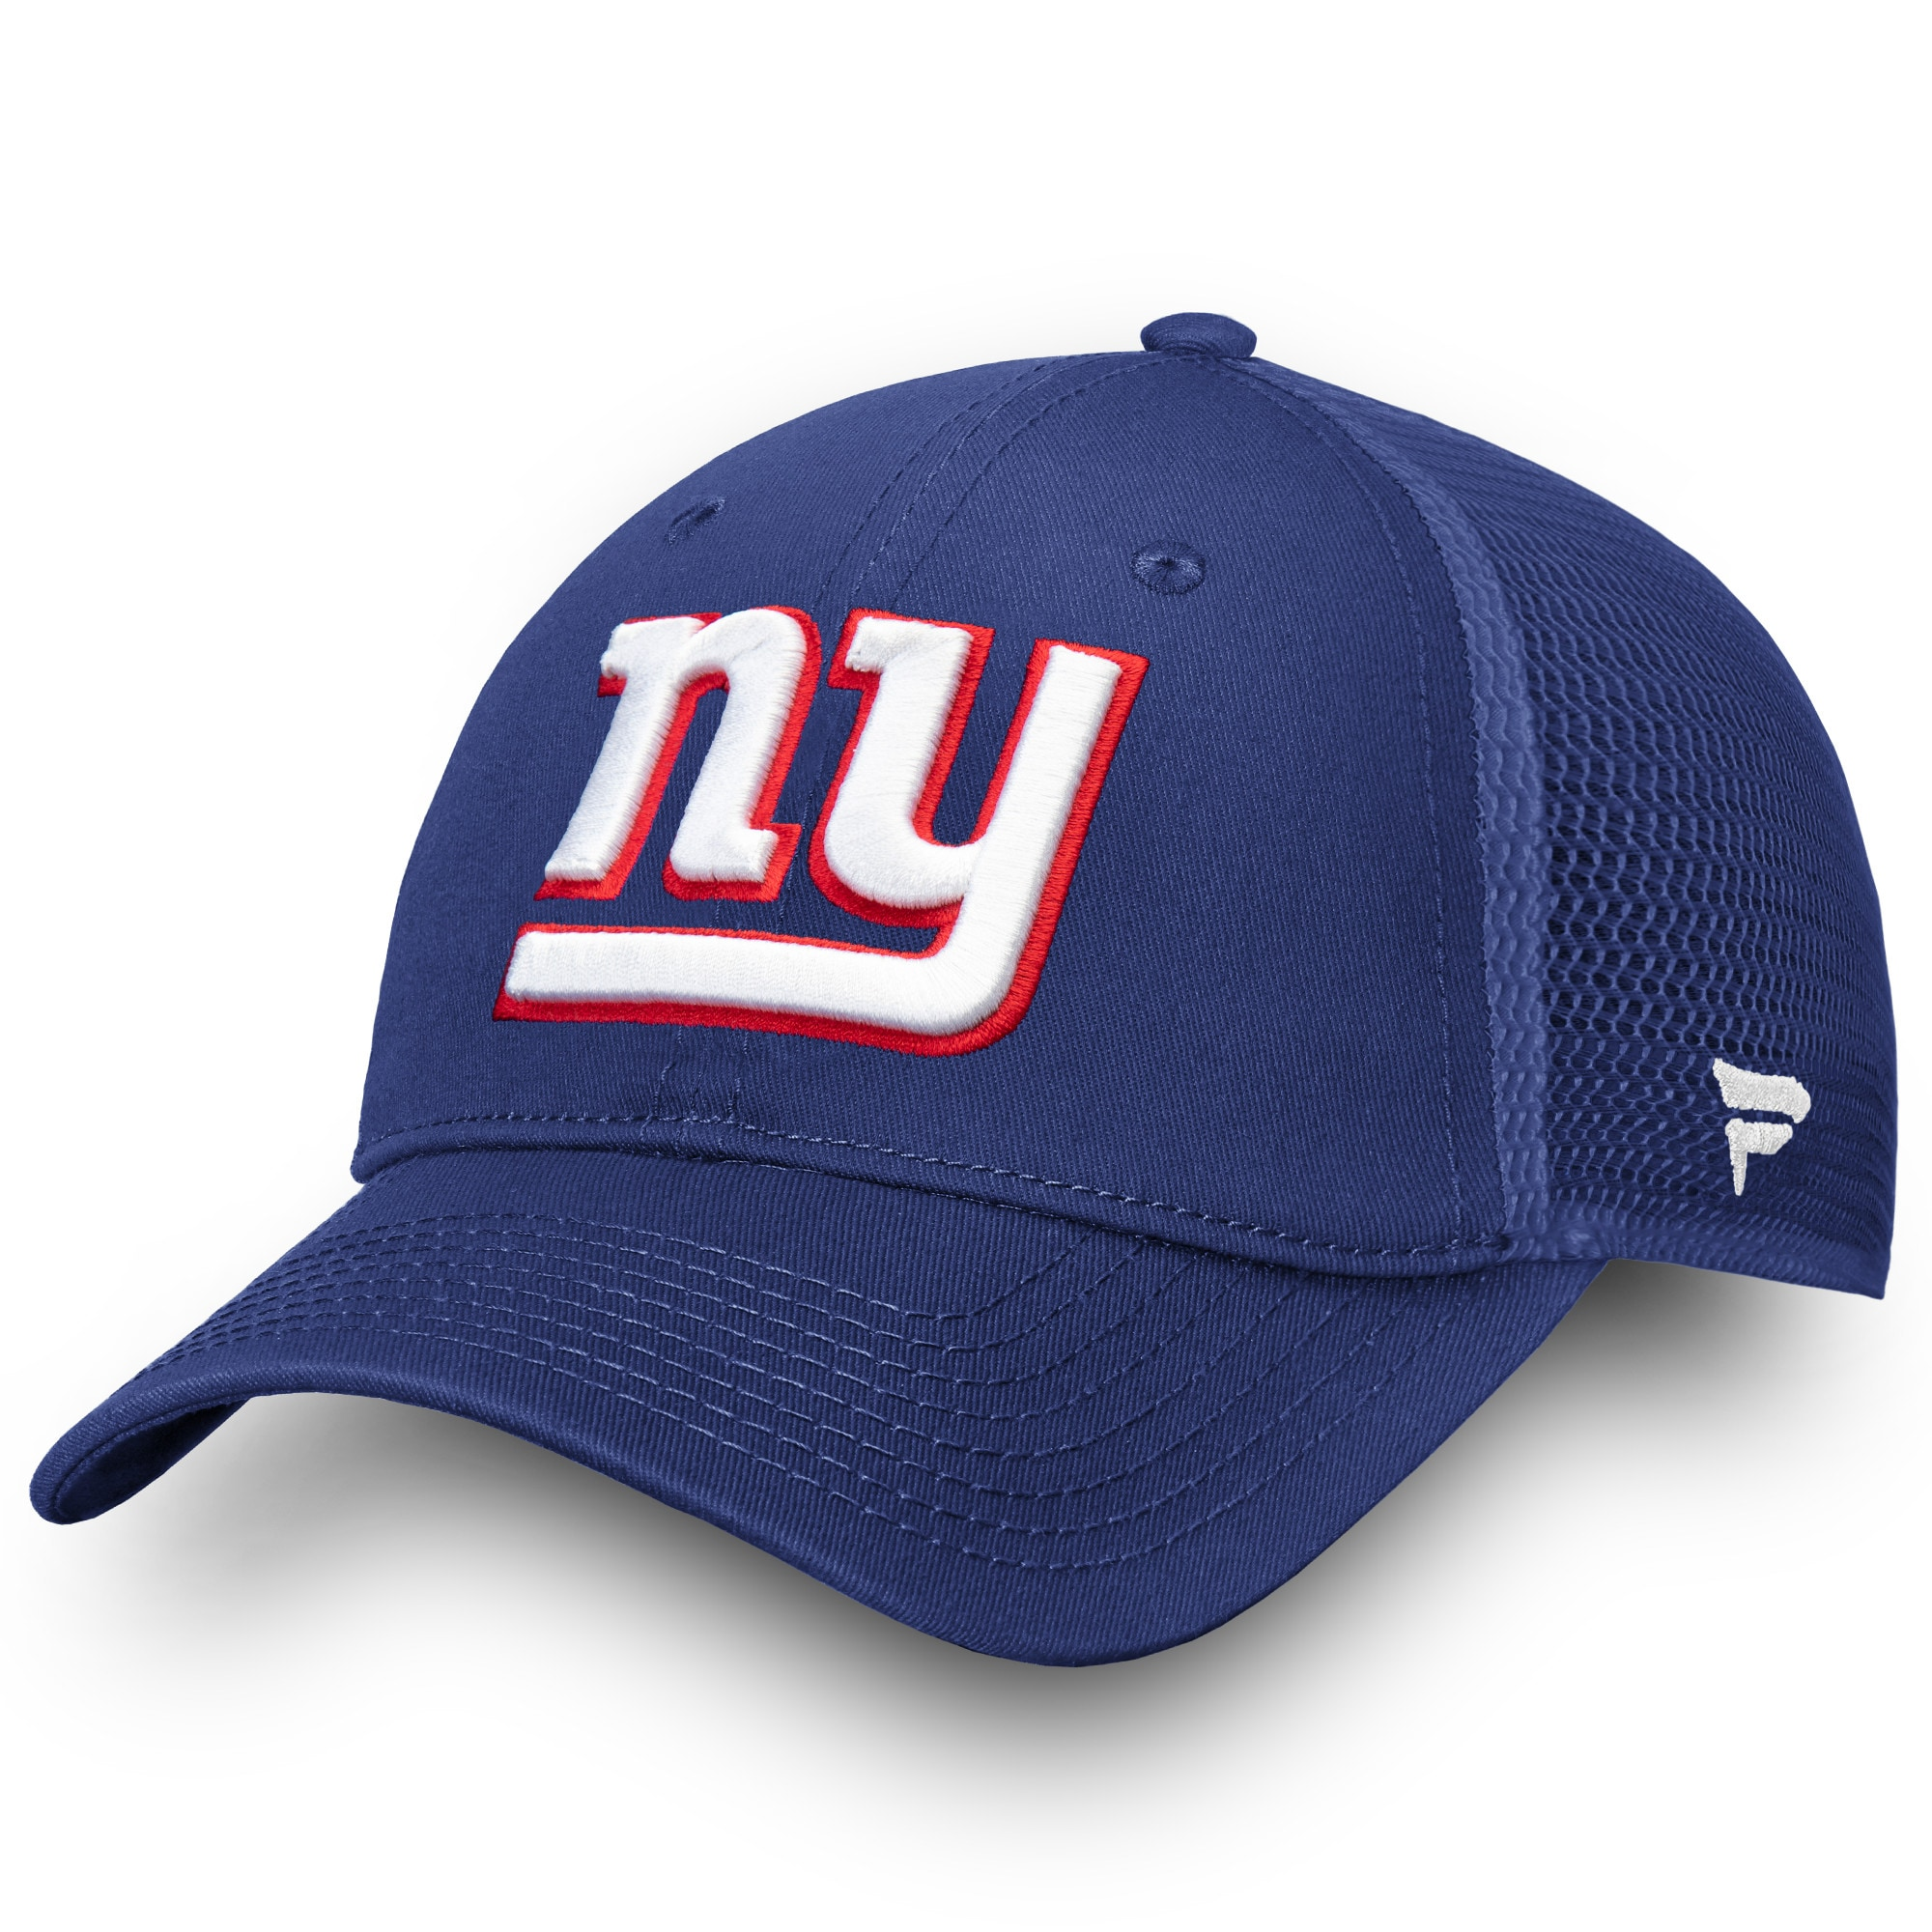 New York Giants NFL Pro Line by Fanatics Branded Elevated Core Trucker Adjustable Snapback Hat - Royal